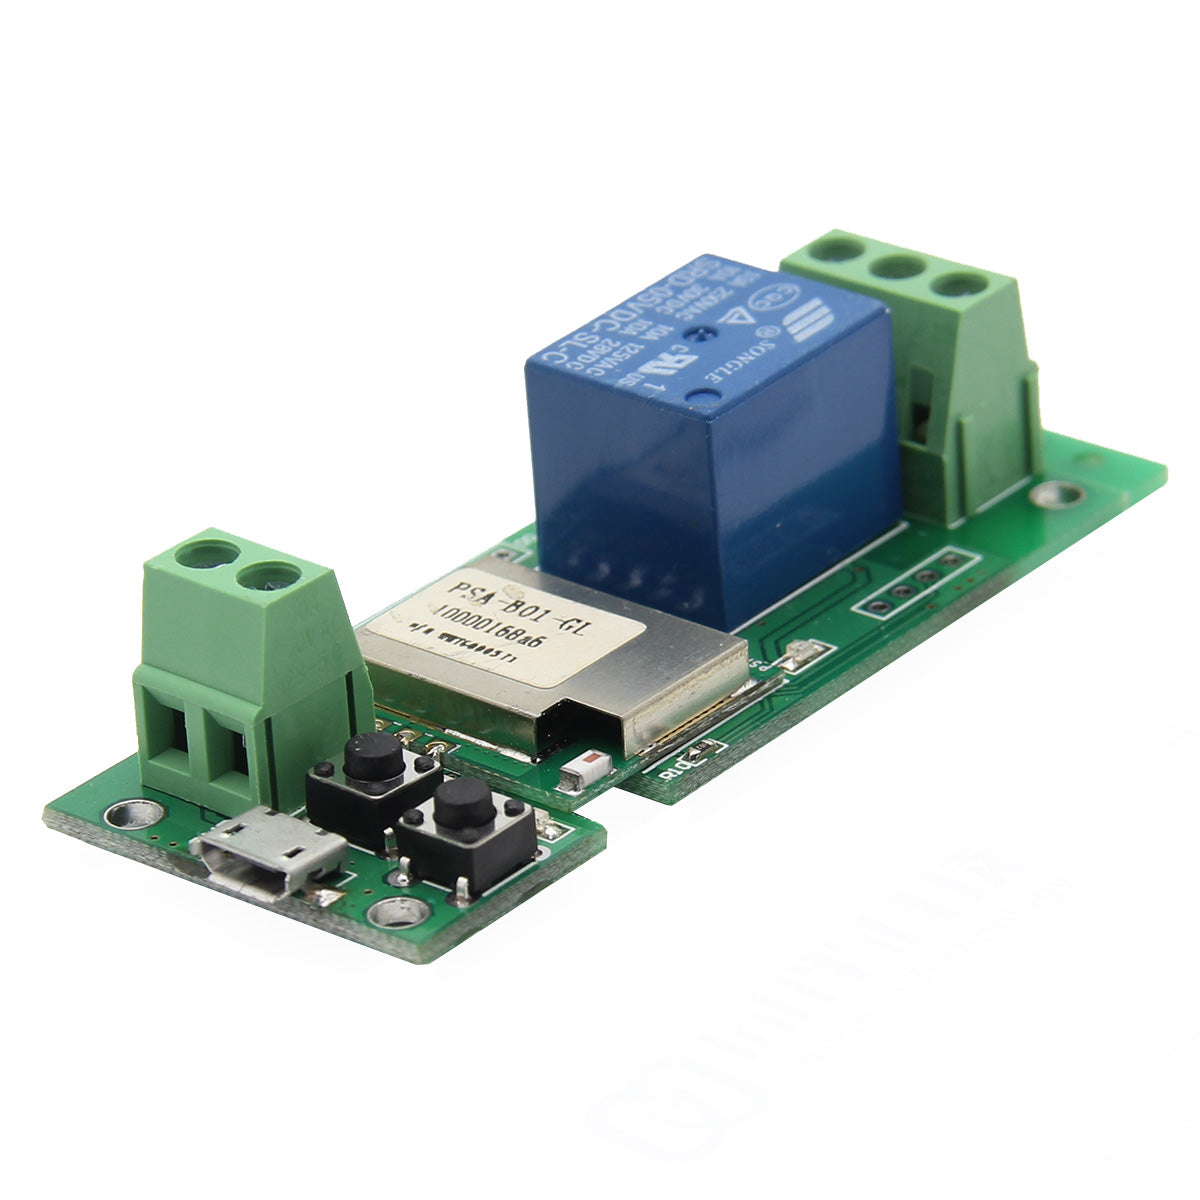 5v Usb Relay 1 Channel Programmable Computer Control For Smart Home 3pcs Dc 12v Delay Timer Module Turn On Off Geekcreit Diy Jog Inching Self Locking Wifi Wireless